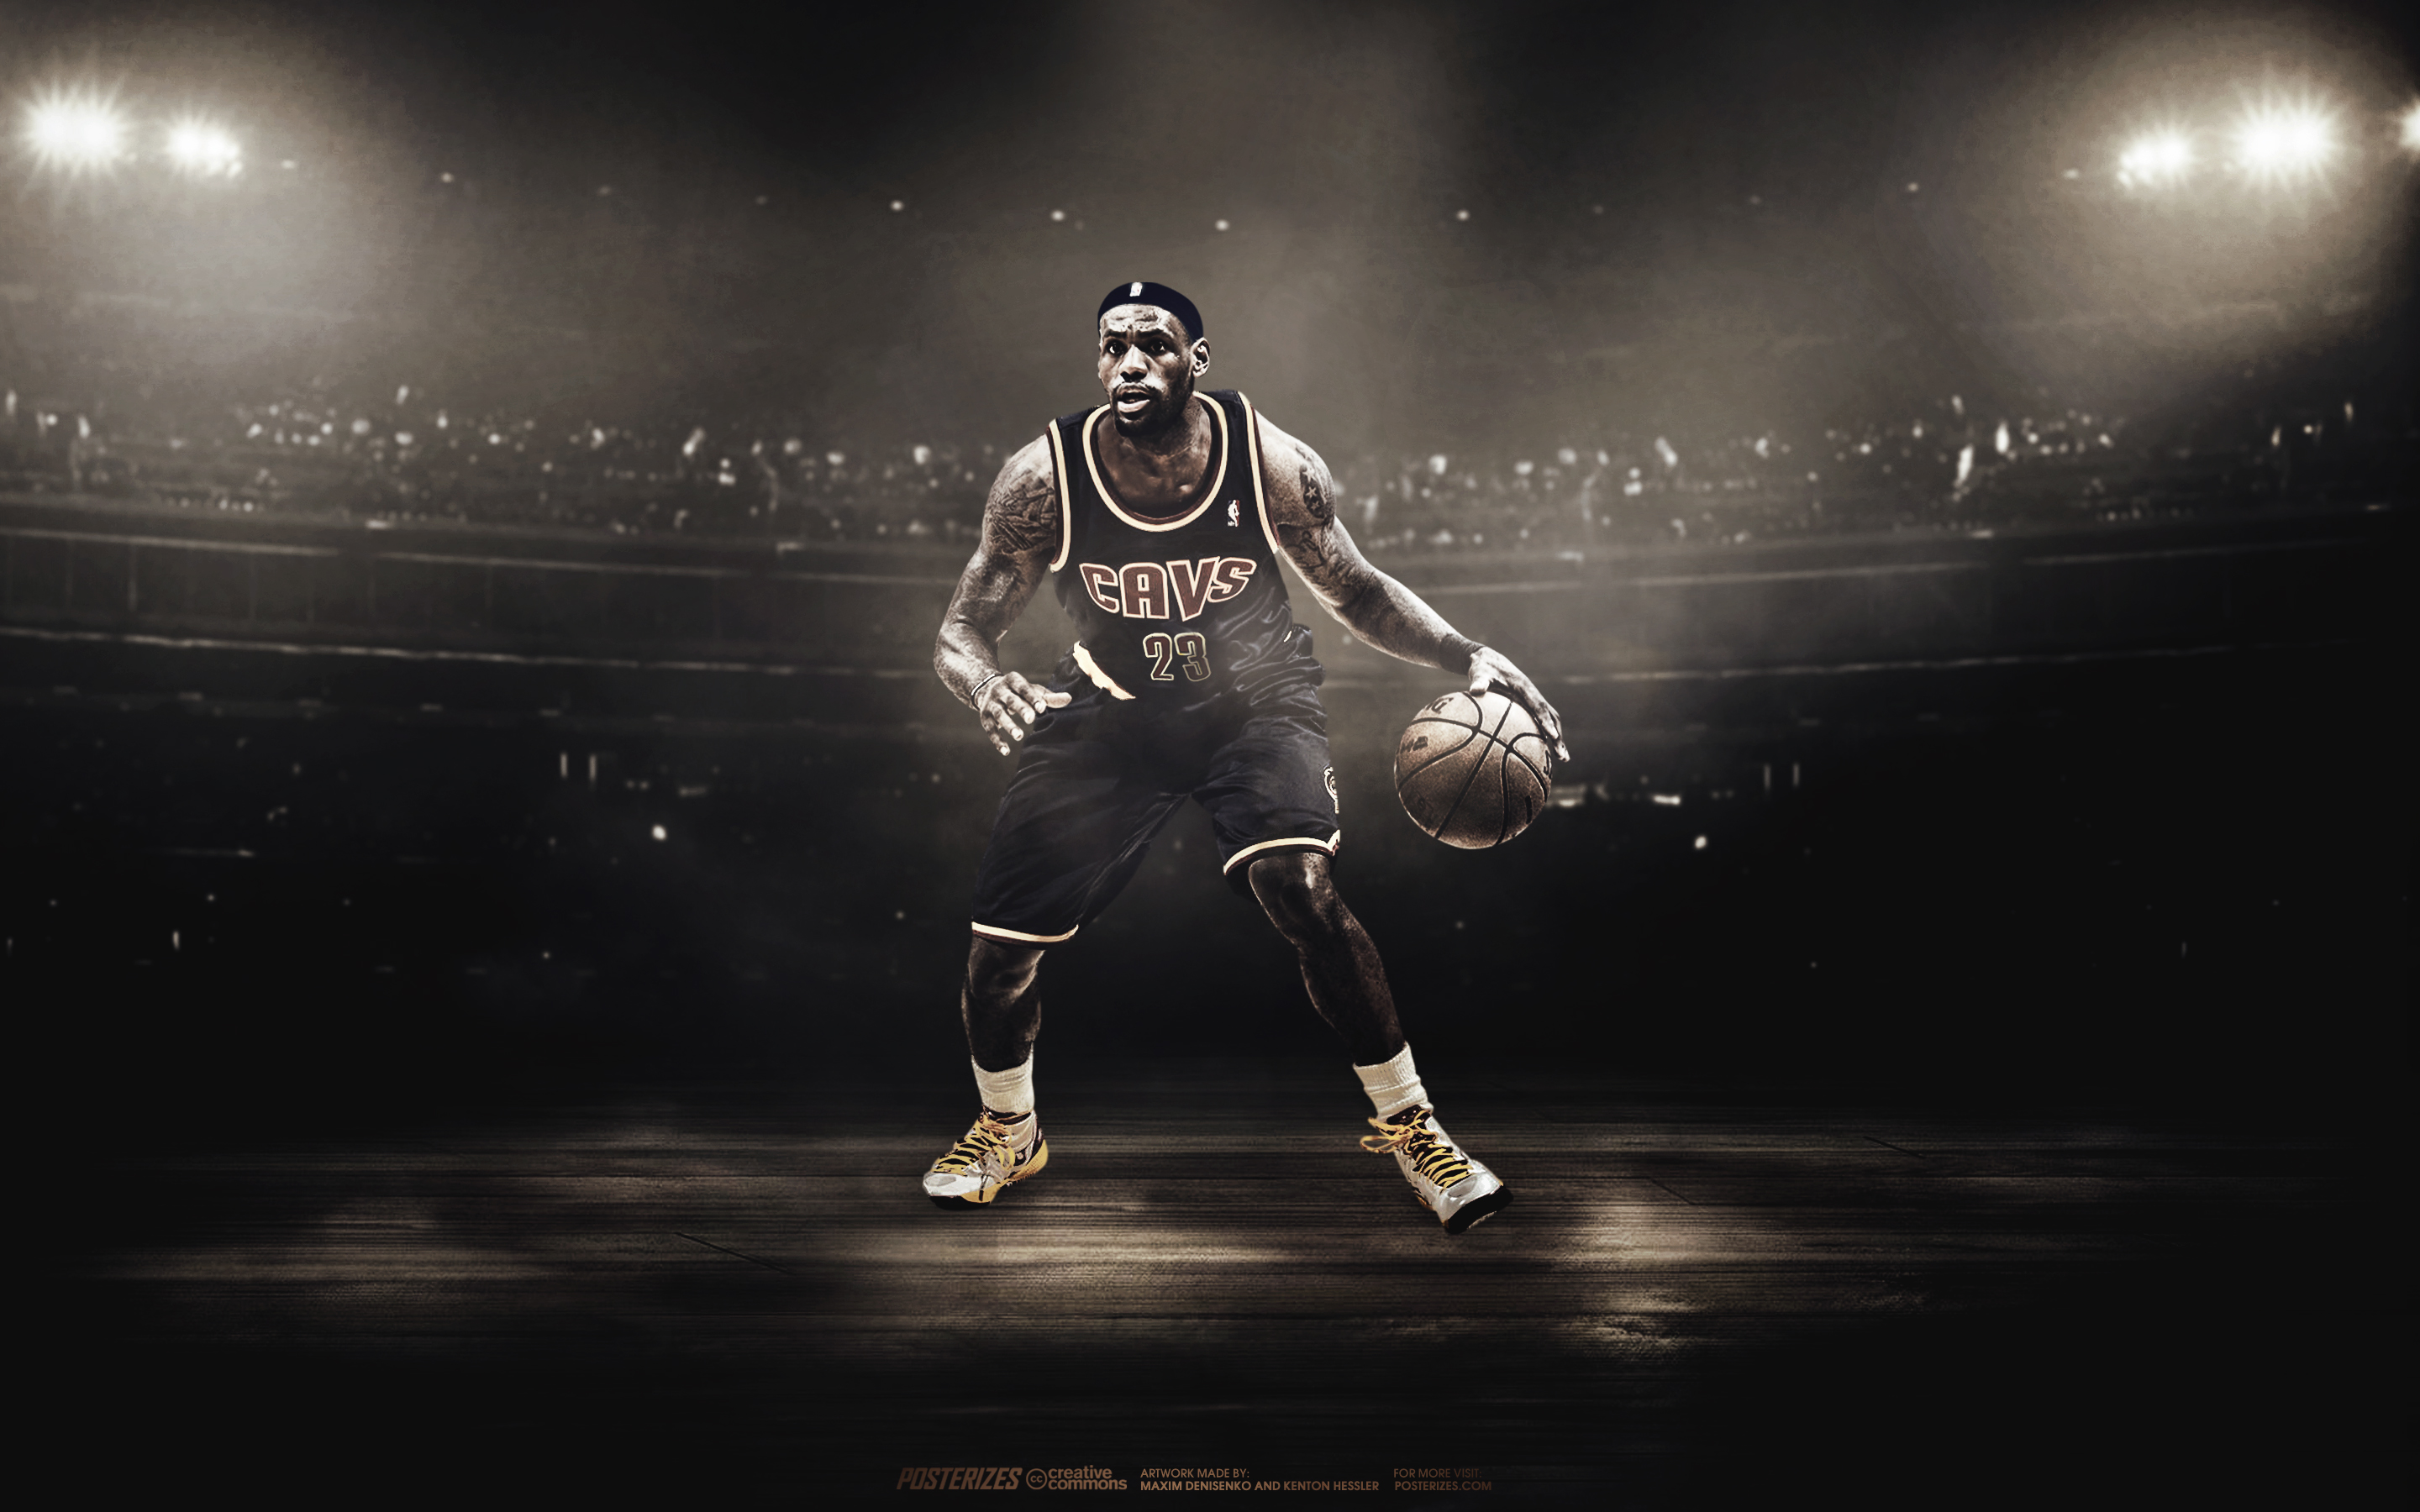 Lebron James Cleveland Cavaliers Wallpaper For Android #mfm 2880x1800 ...